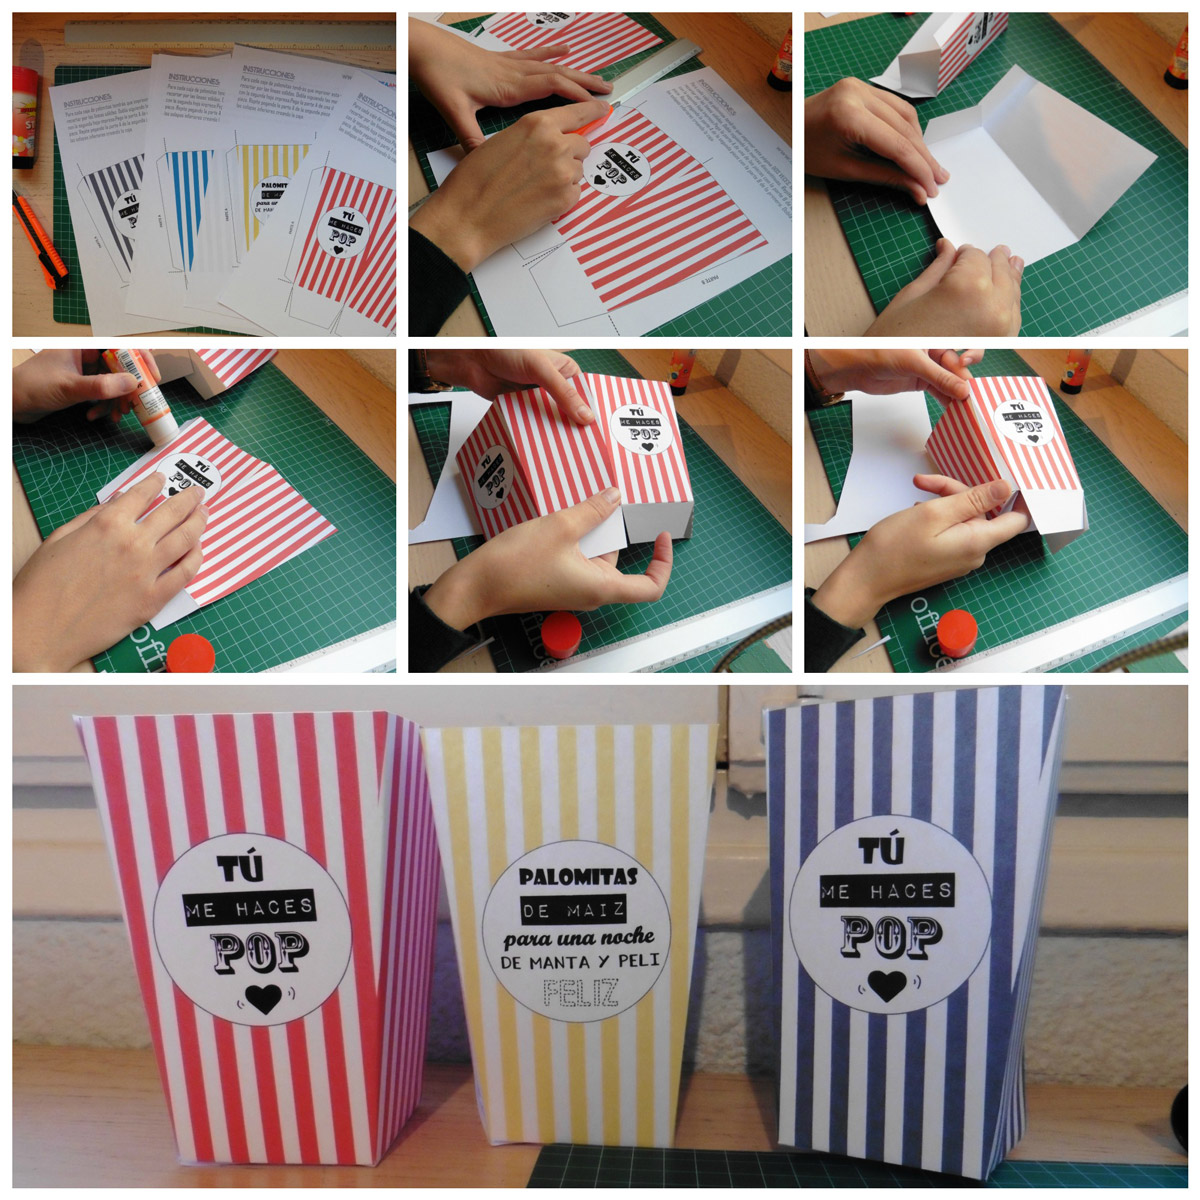 popcorn box step by step caja palomitas paso a paso